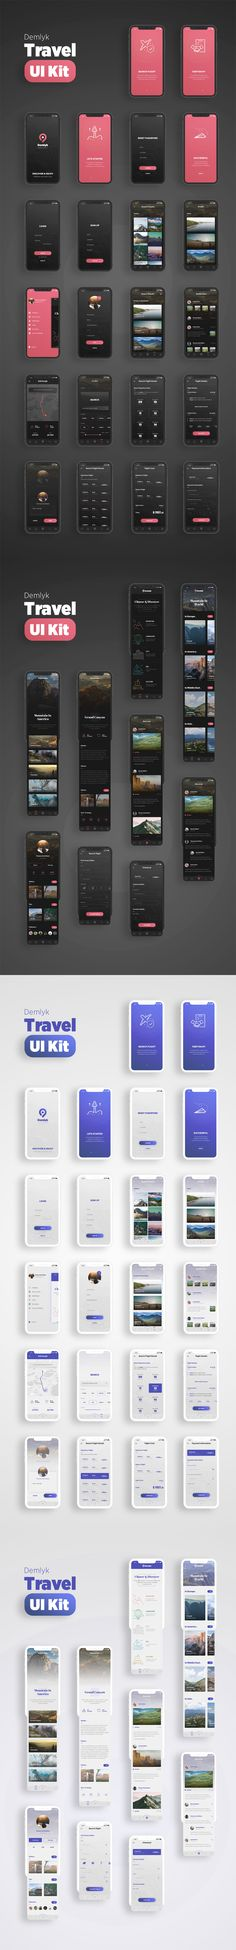 Demlyk Travel iOS UI Kit -  Black & White Travel App for iPhone X